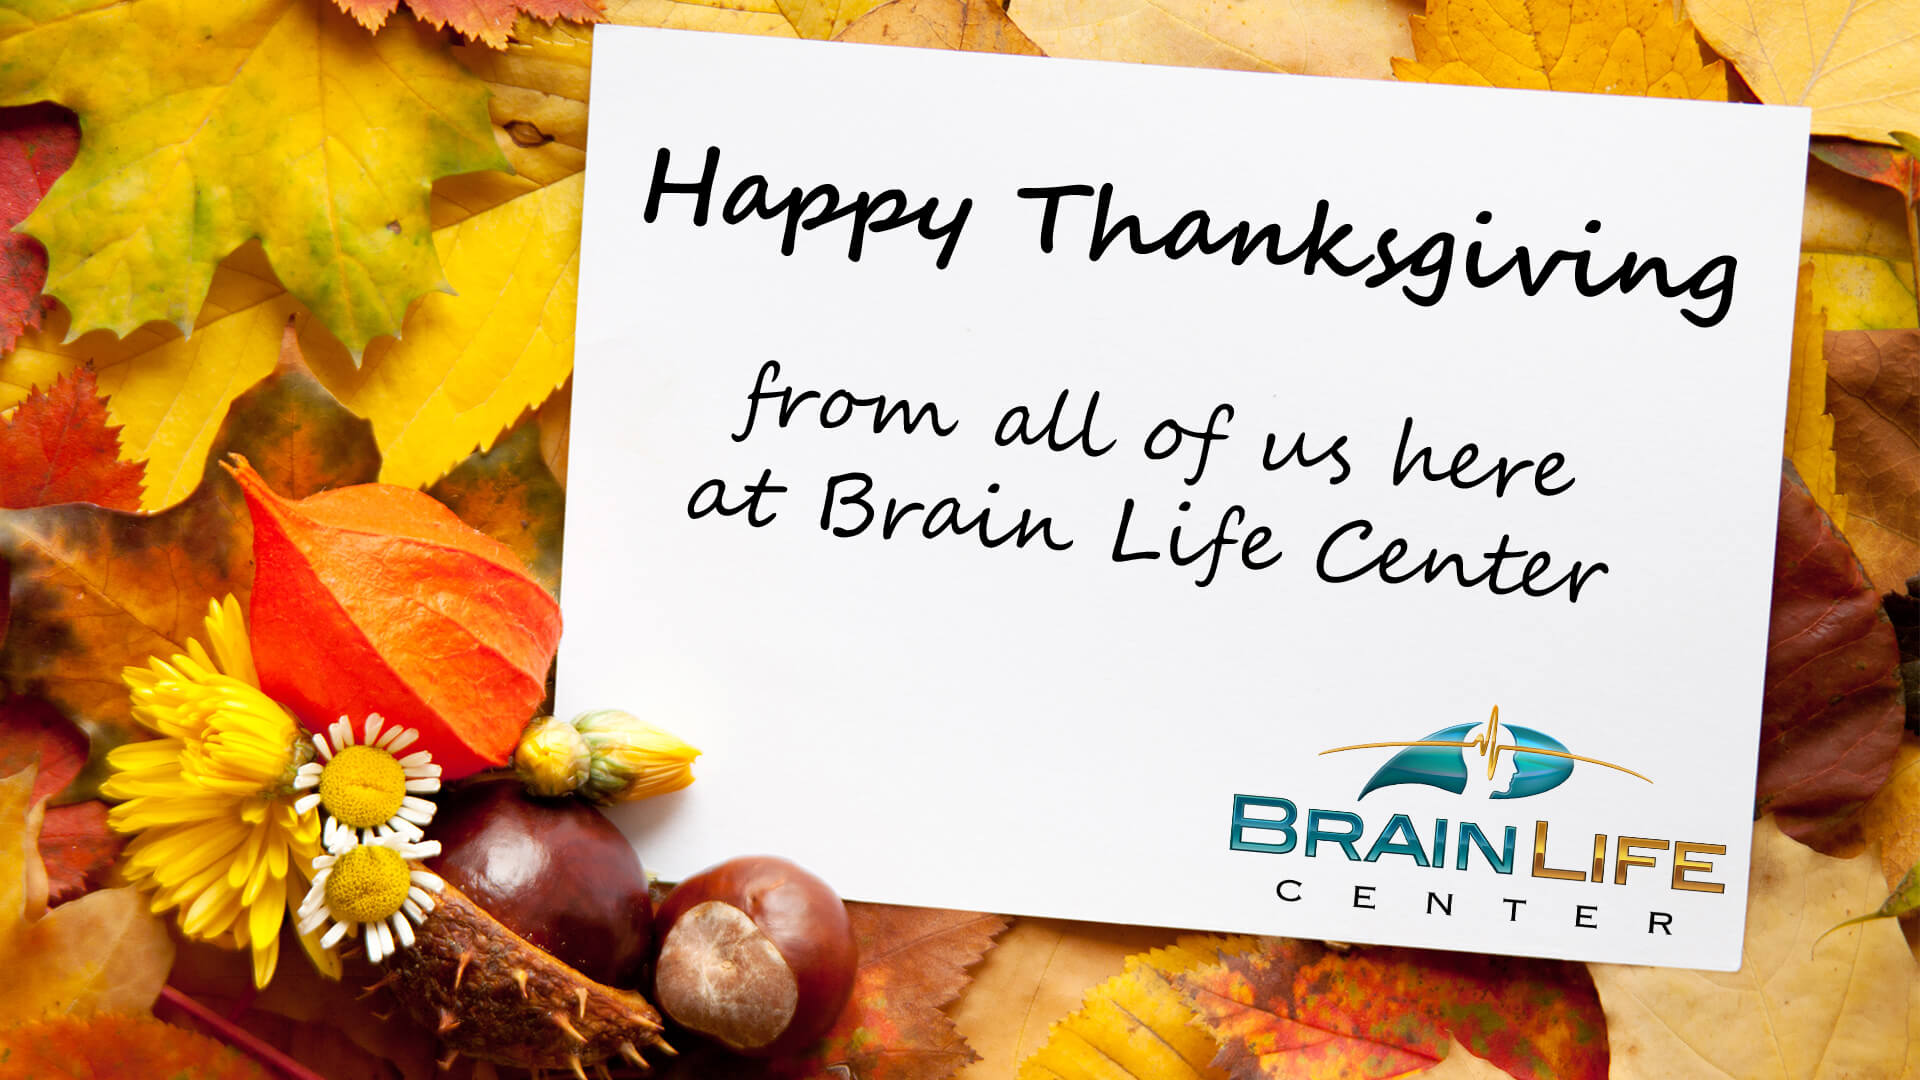 Happy Thanksgiving from Brain Life Center.